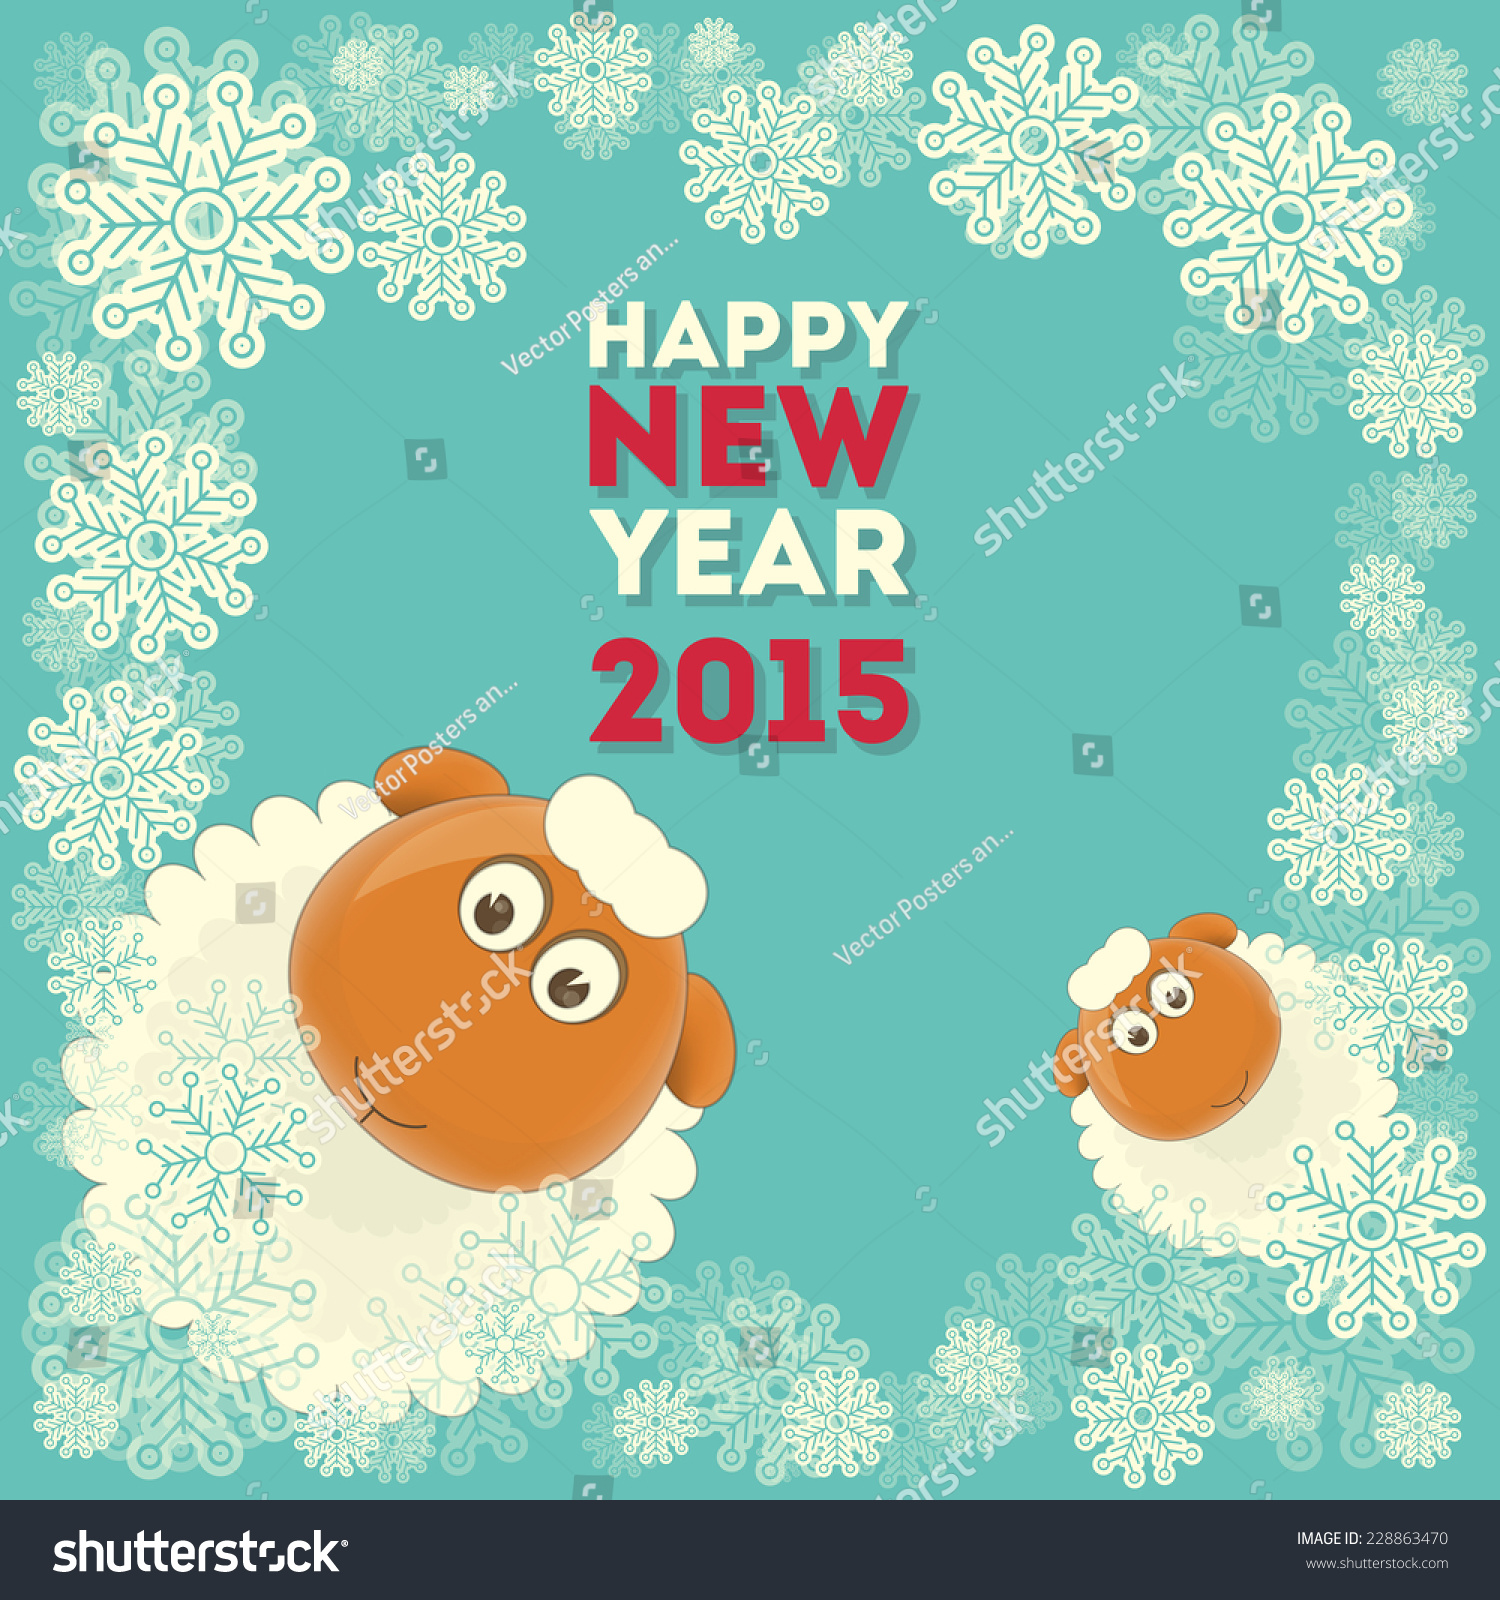 New year card cute cartoon two stock vector 228863470 shutterstock new year card with cute cartoon two sheeps symbol of 2015 year year of kristyandbryce Image collections